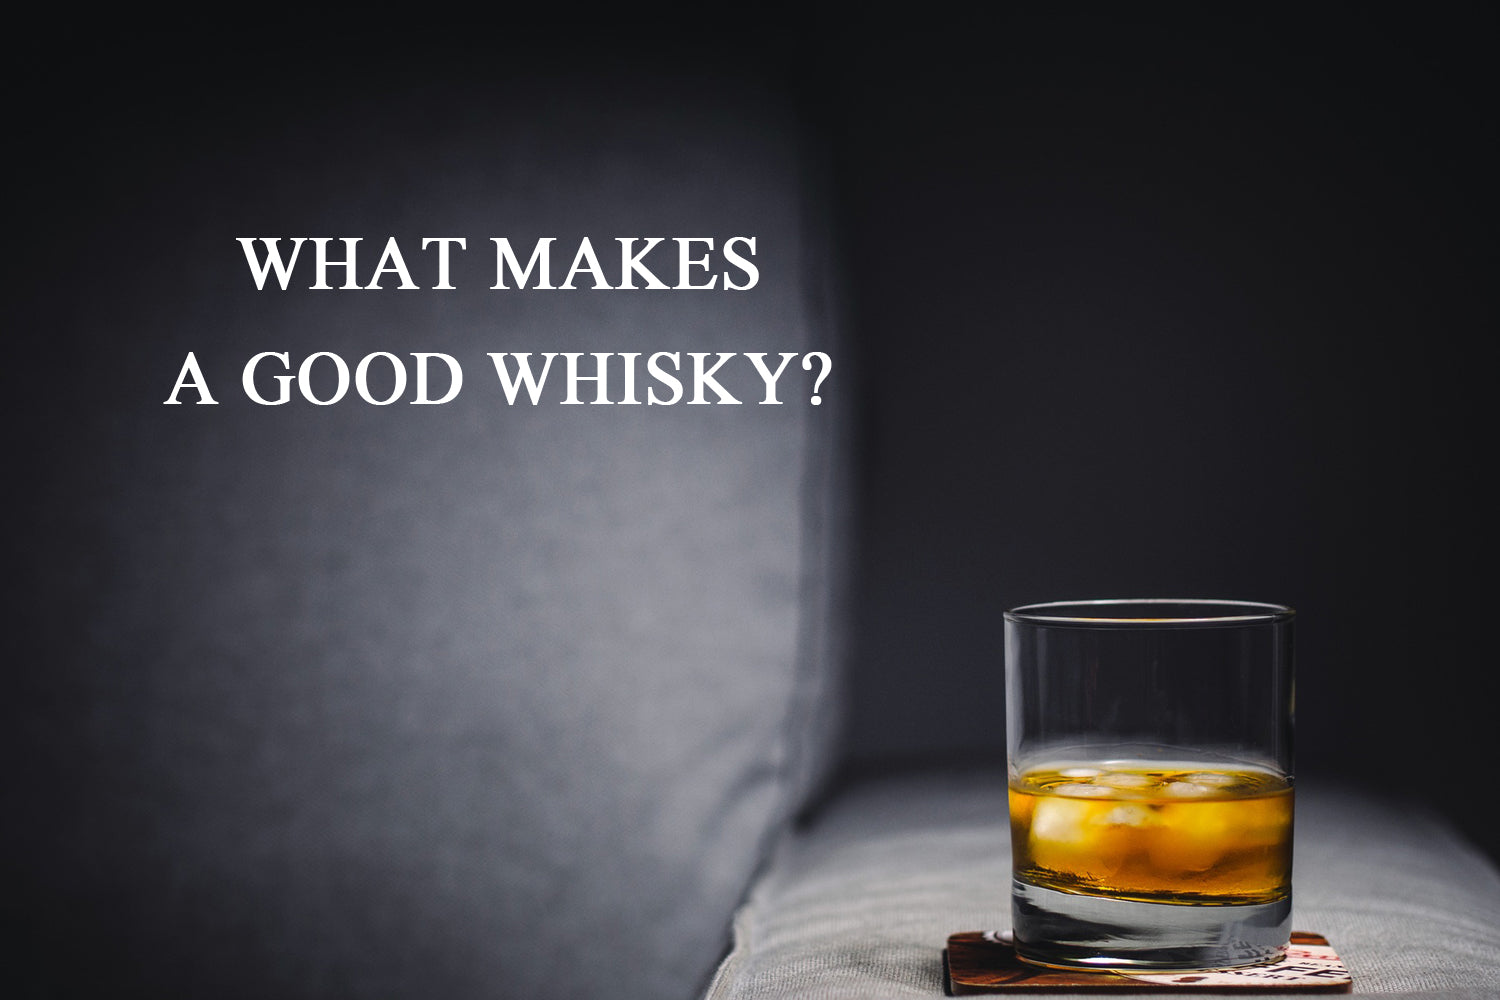 What makes a good whisky?